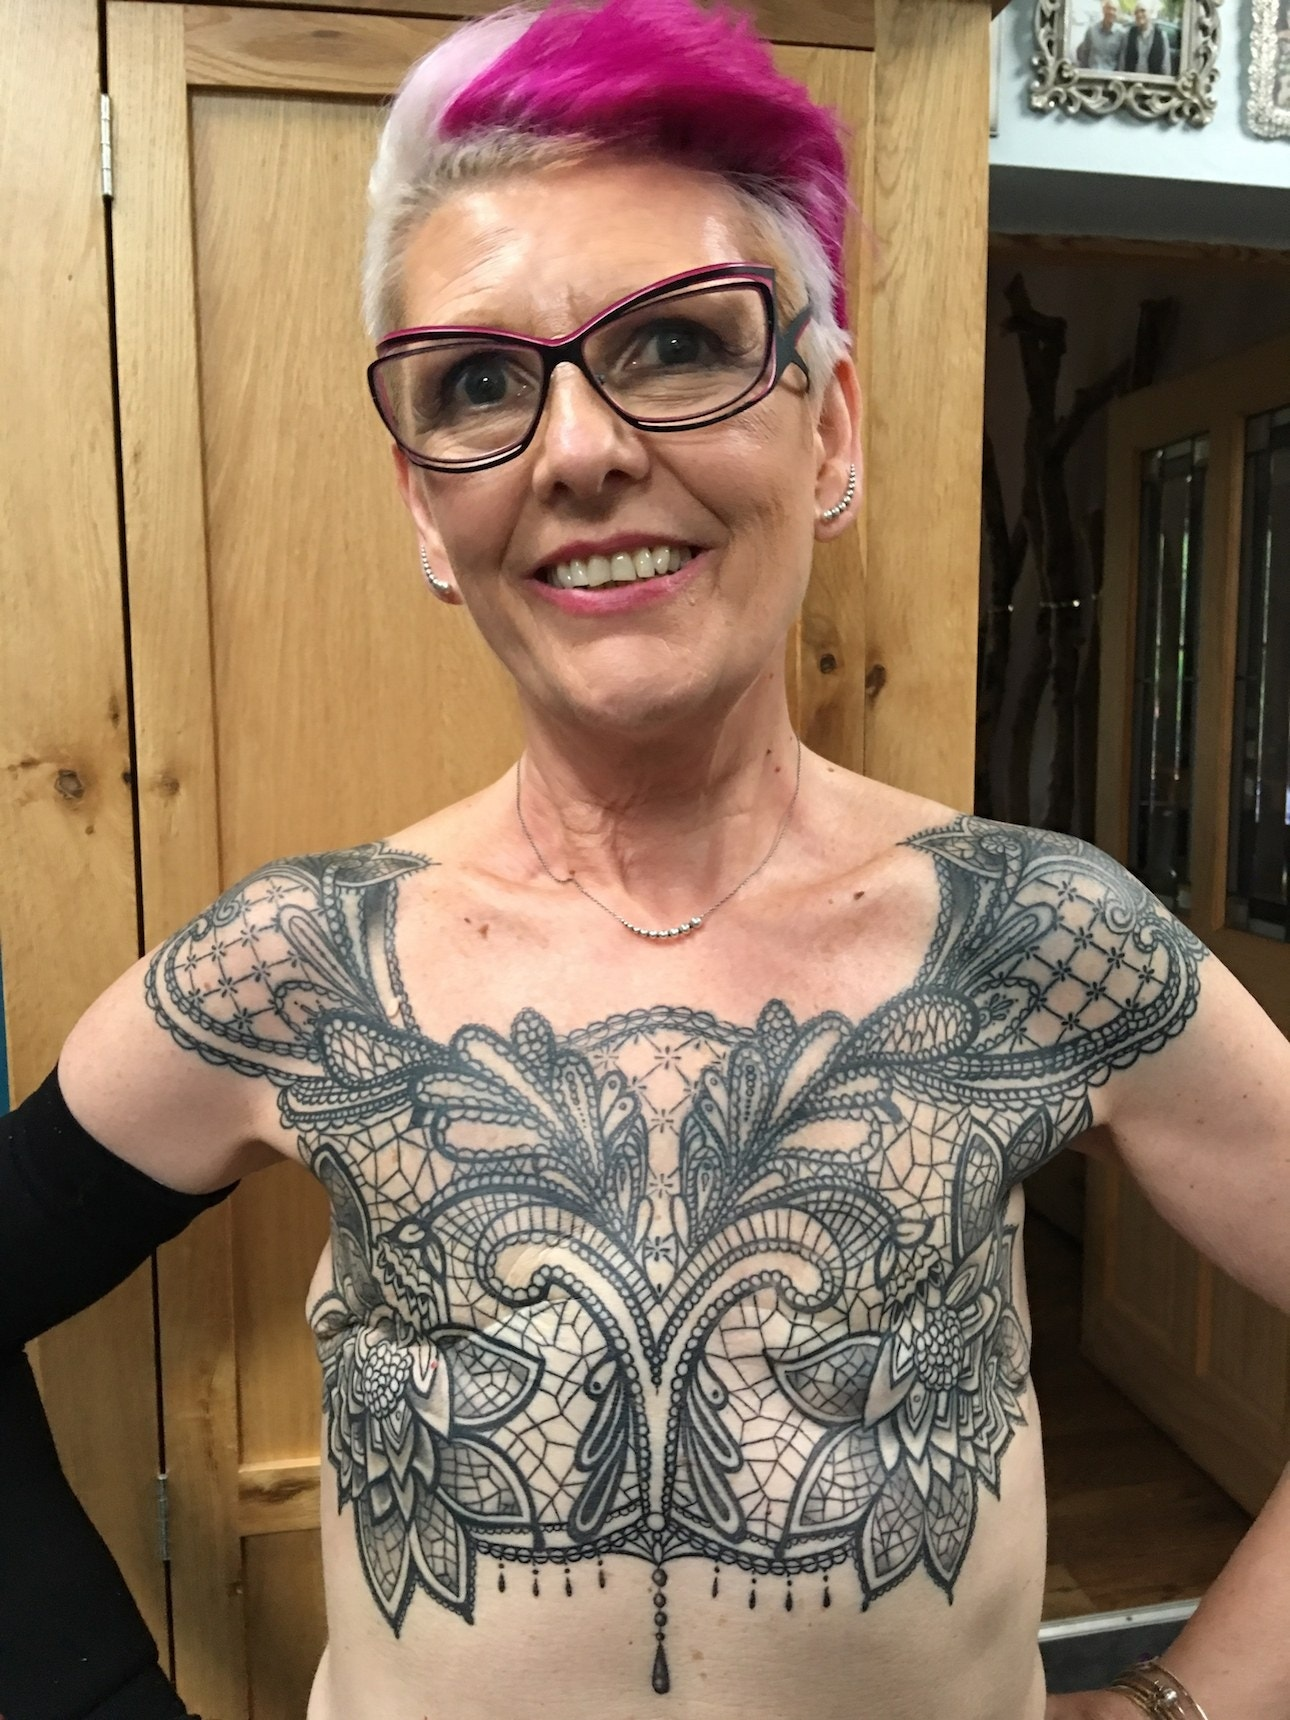 Chest Female Tattoo: 5 Years After Remission, Woman Gets Mastectomy Tattoo On